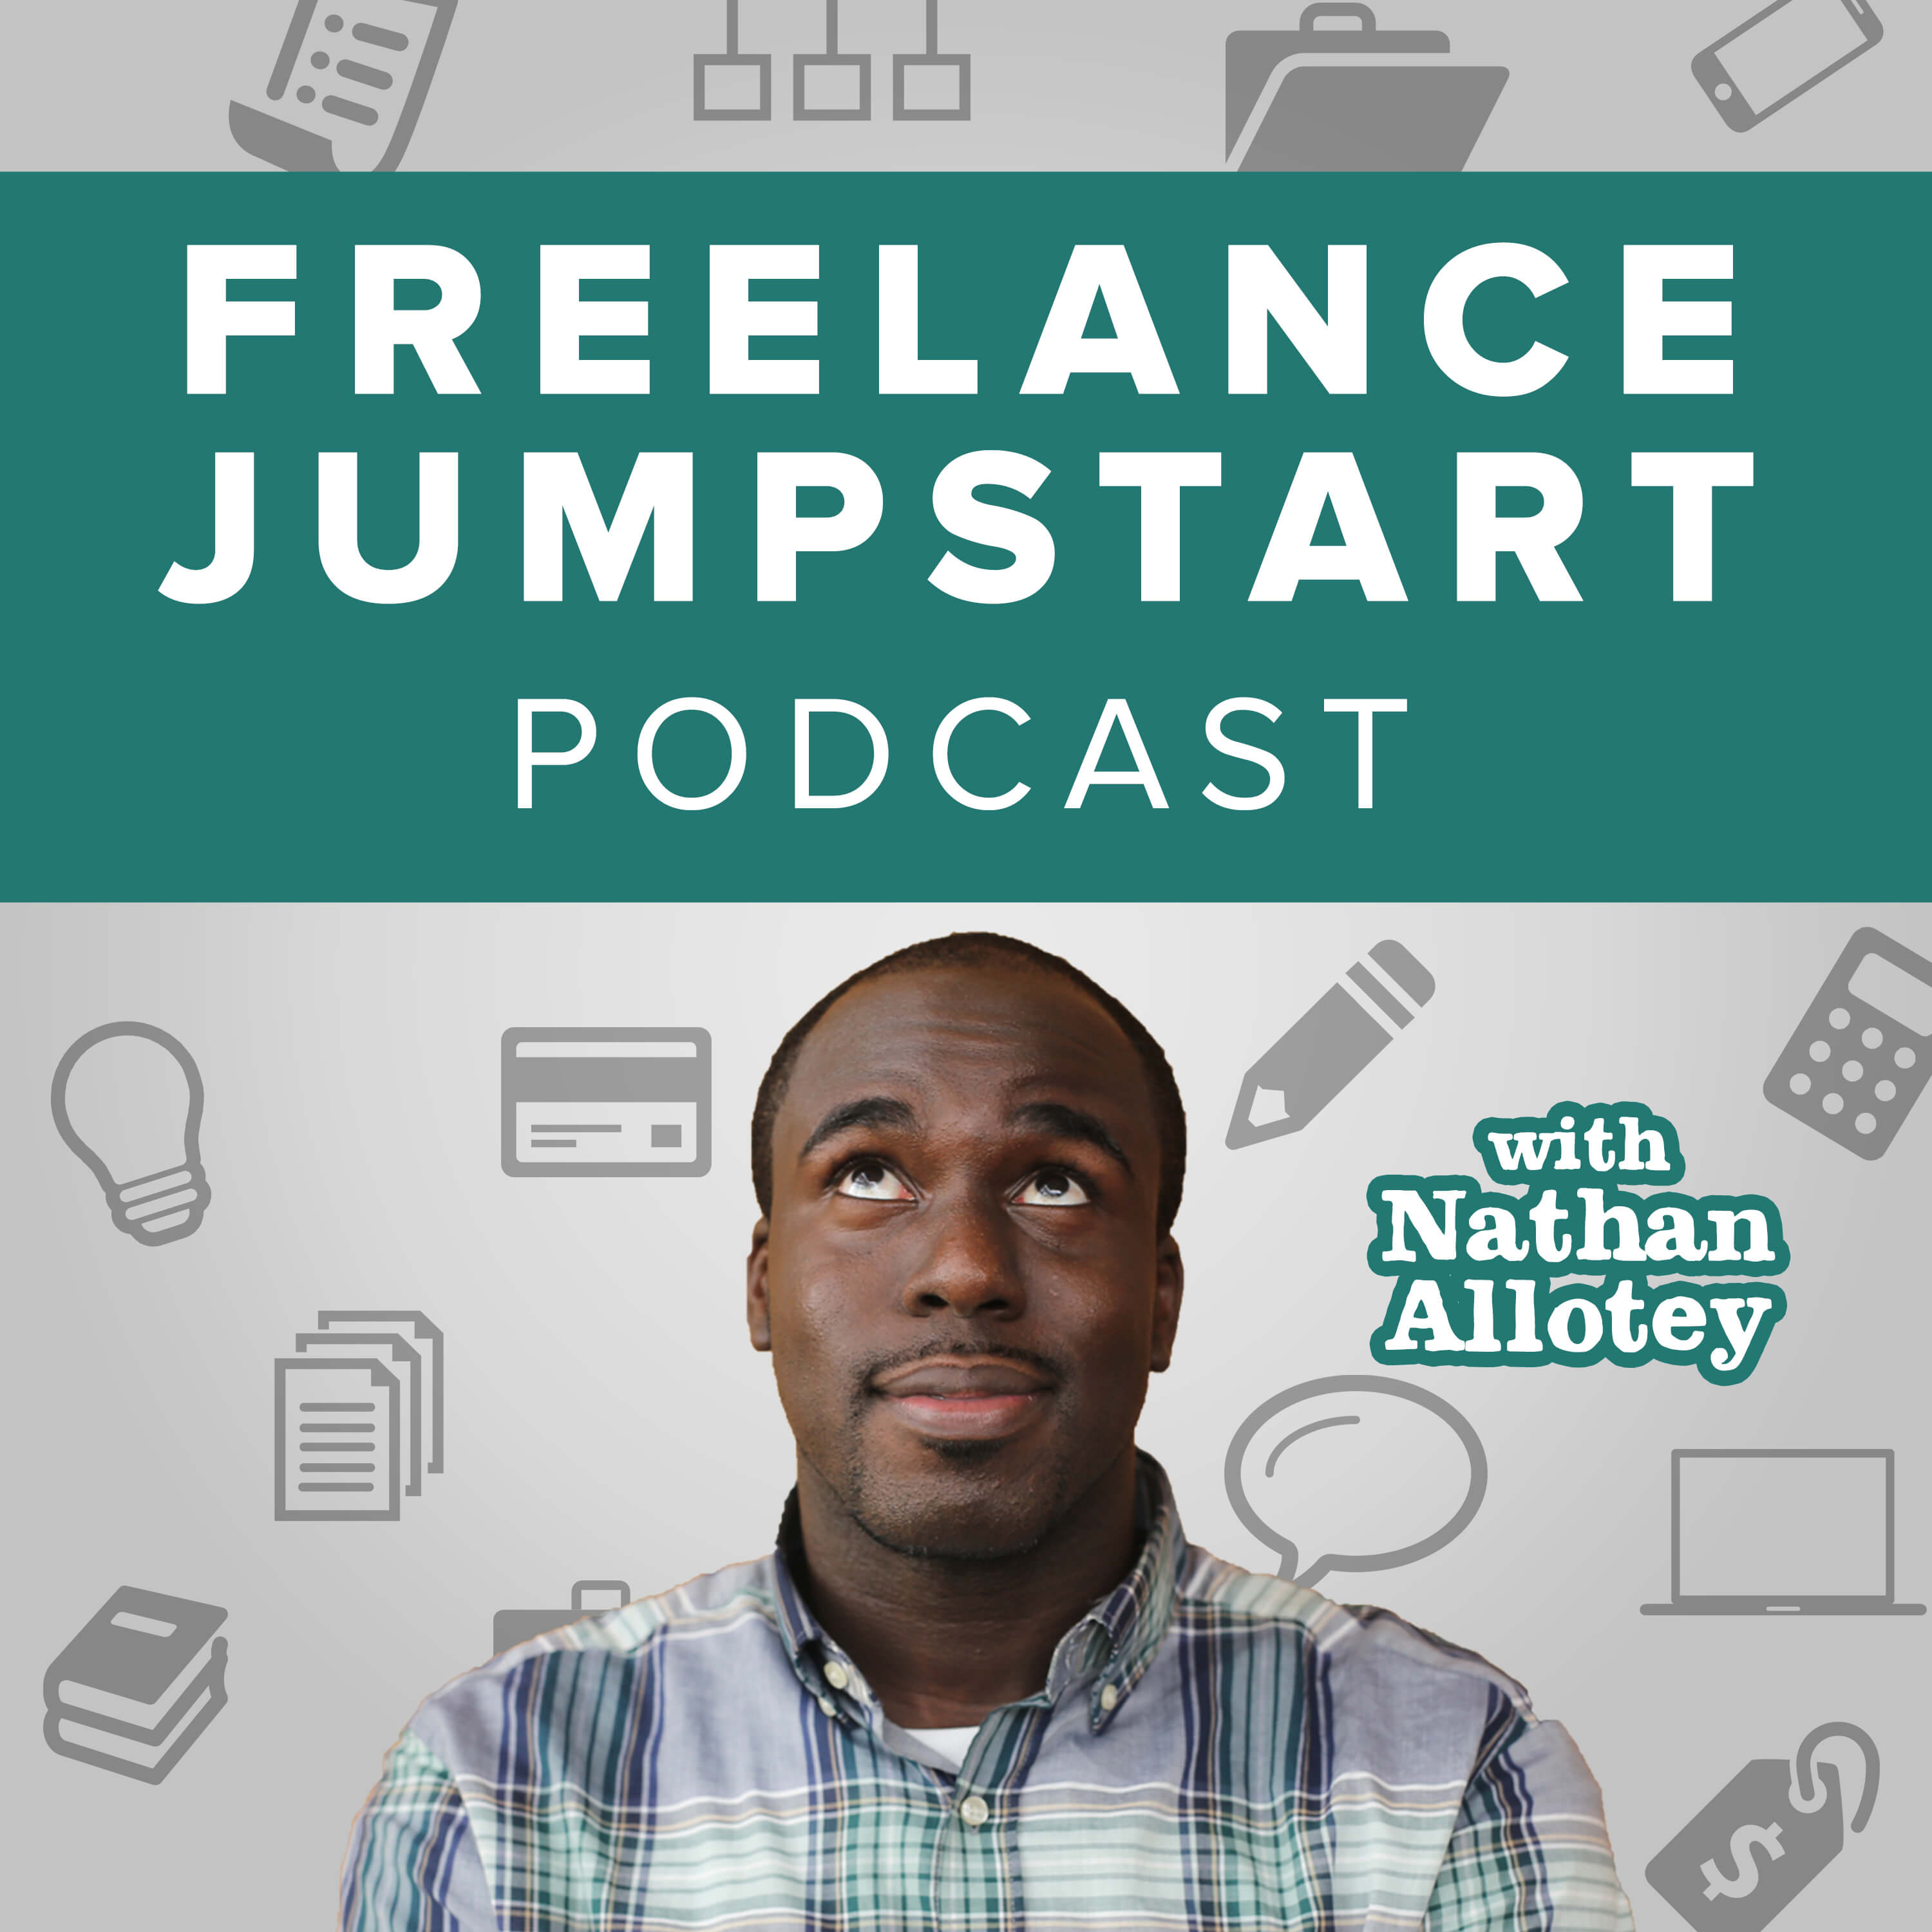 Freelance Jumpstart Podcast